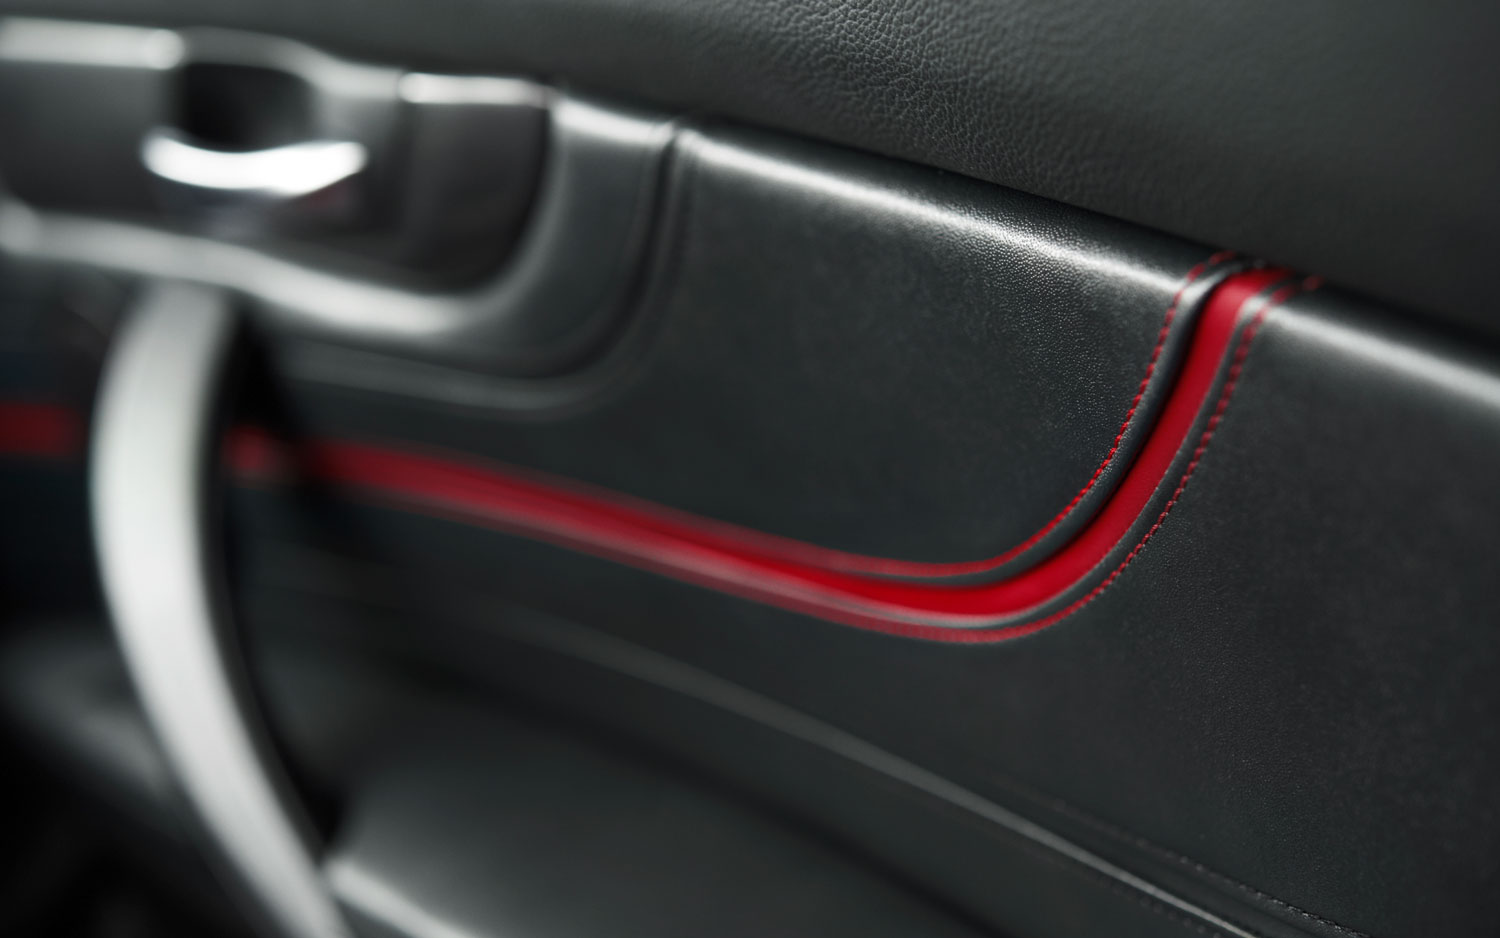 Feature Flick: Design Details of the BMW Zagato Coupe